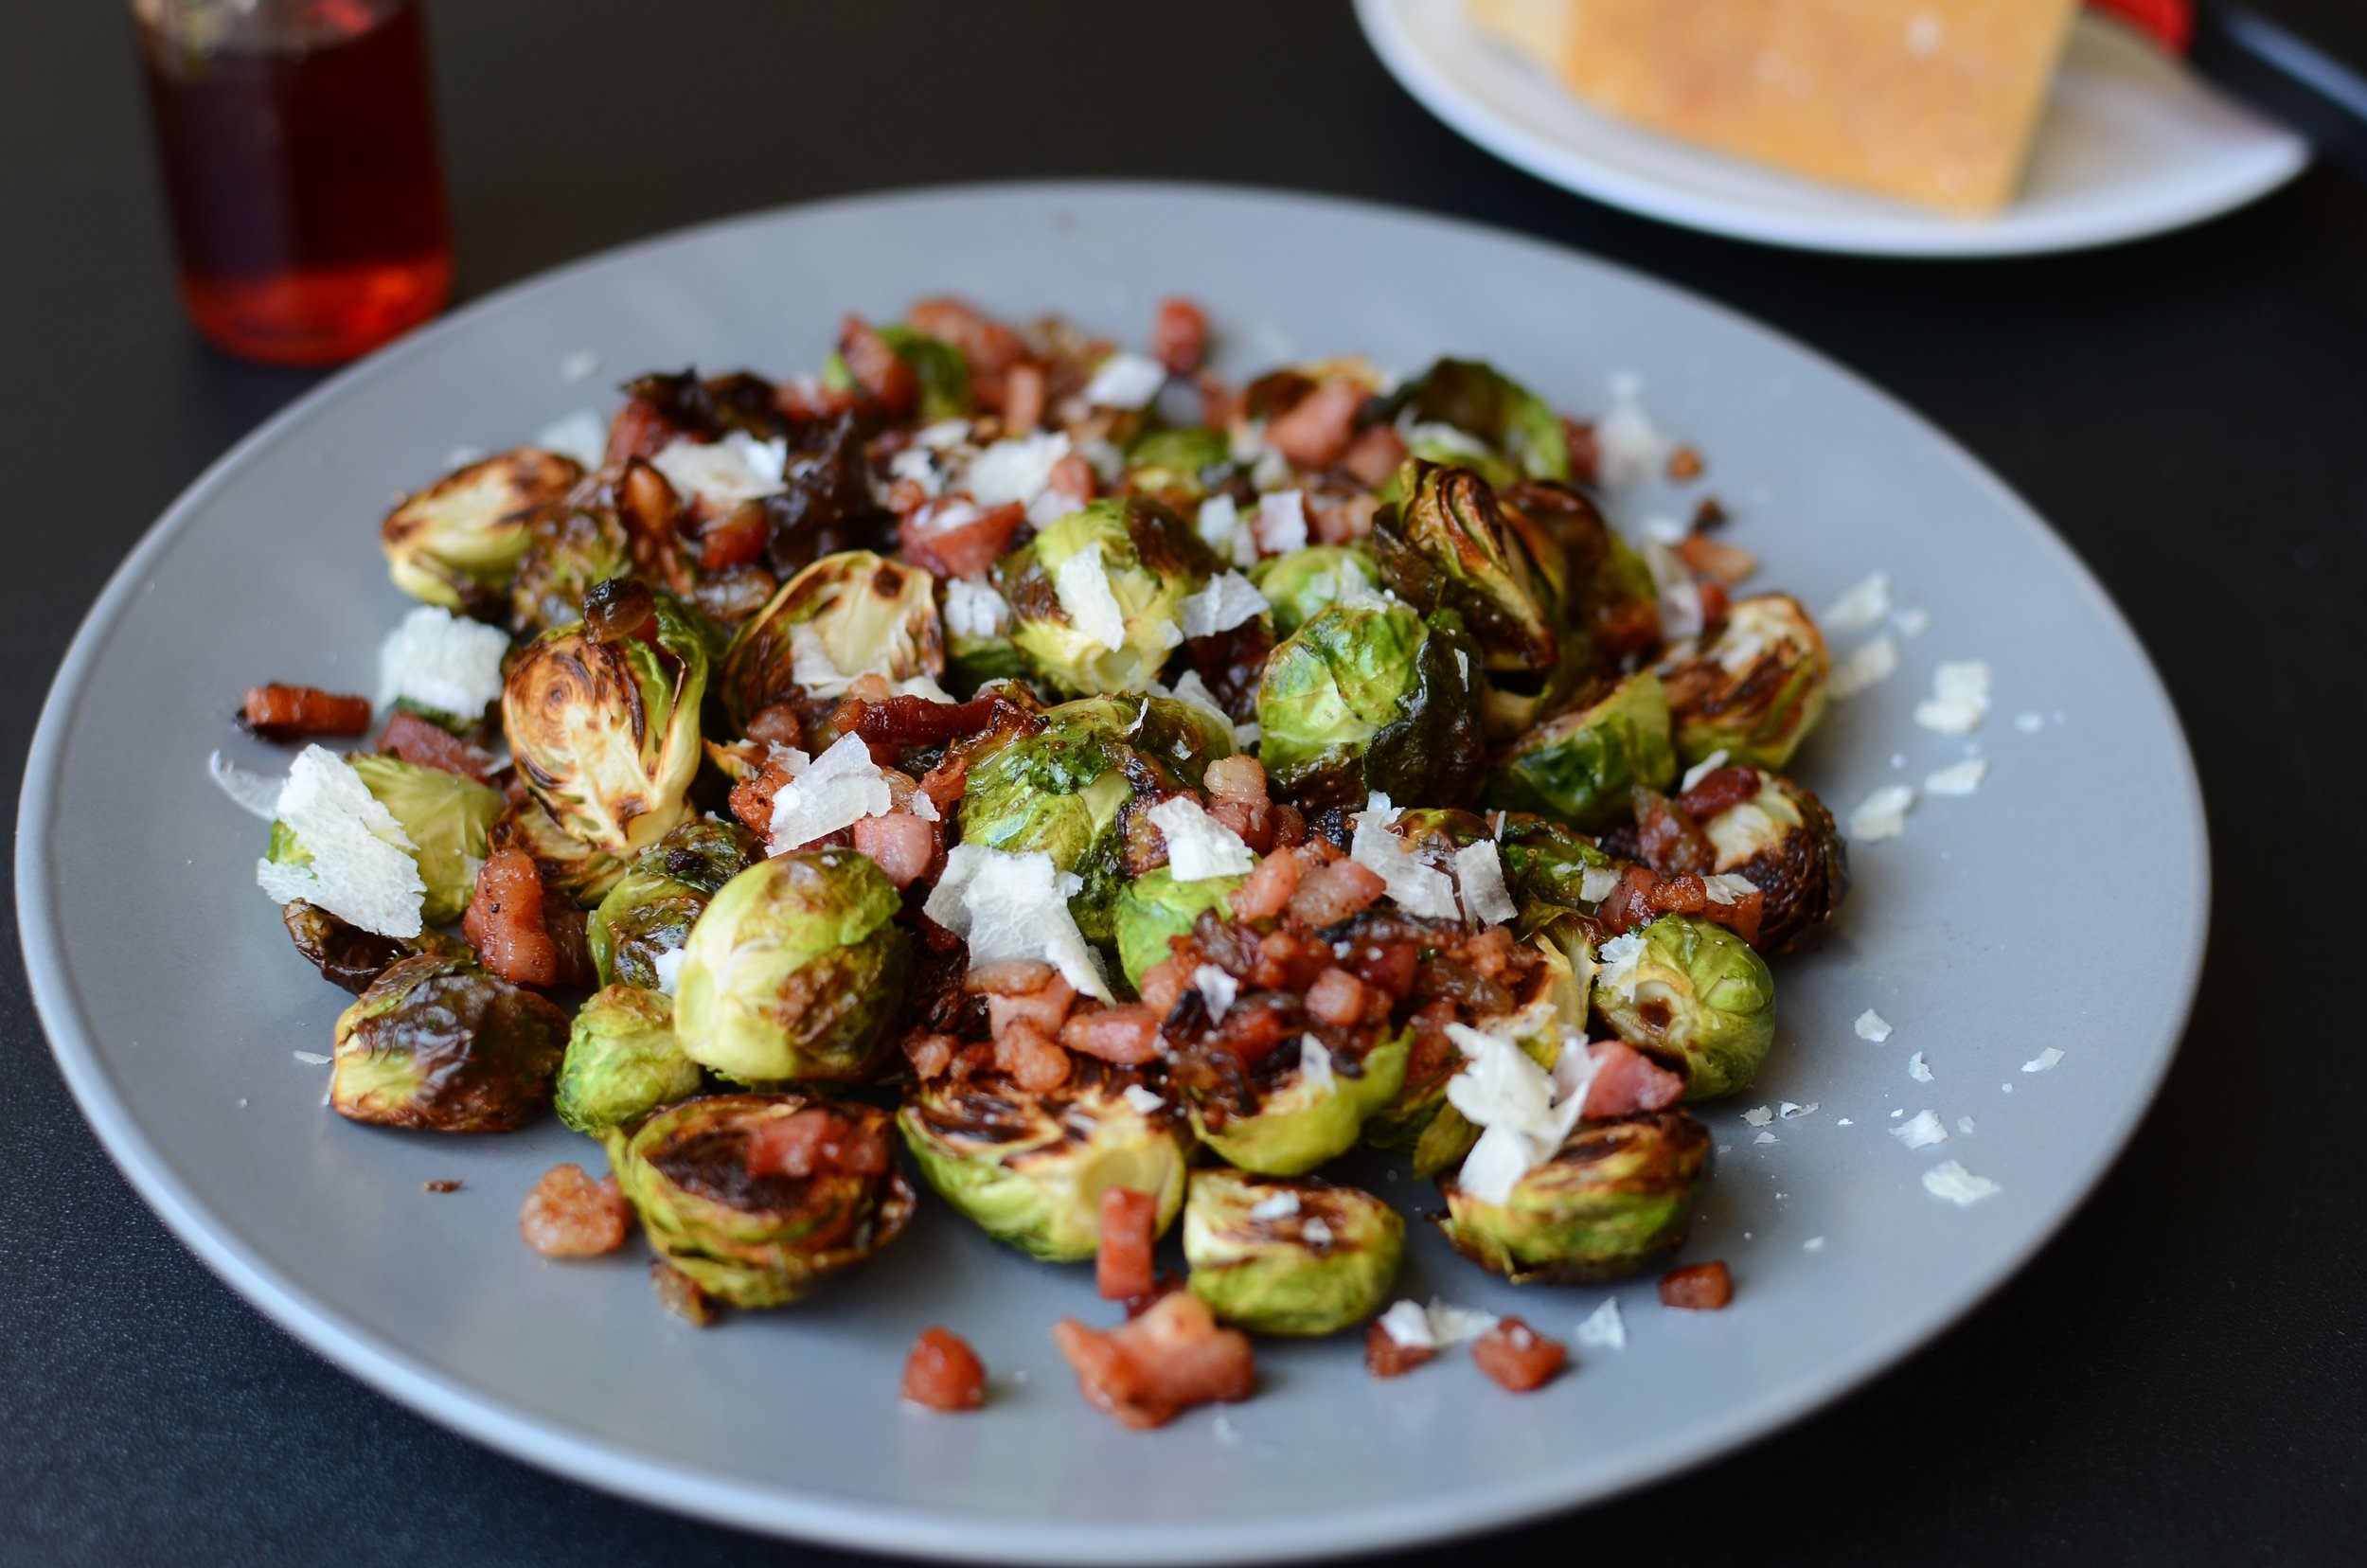 ButterYum. Brussels sprouts with pancetta and parmesan recipe. how to cook Brussel sprouts. how to cook Brussels sprouts. Brussel sprout recipe. Brussels sprouts recipe.